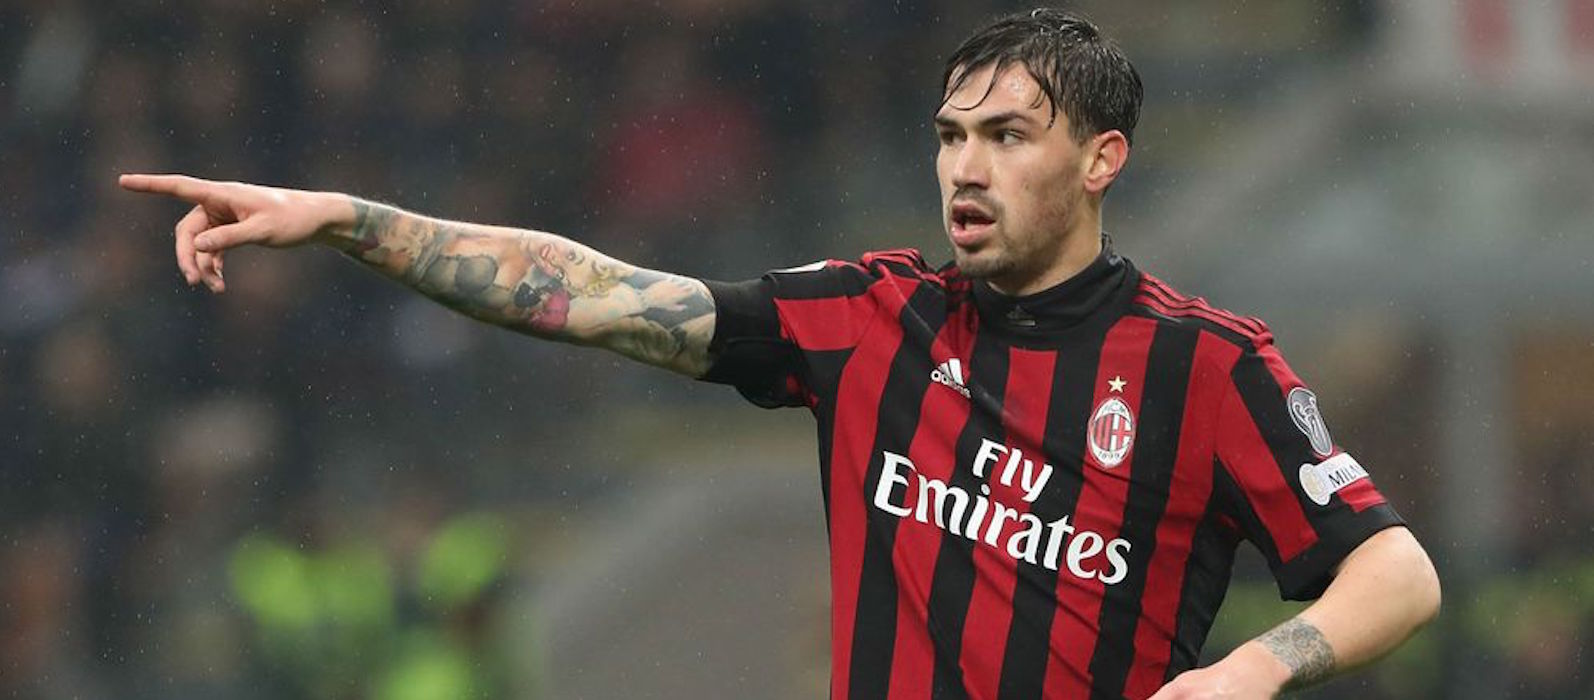 From Italy: Manchester United intent on signing AC Milan duo Leonardo Bonucci and Alessio Romagnoli